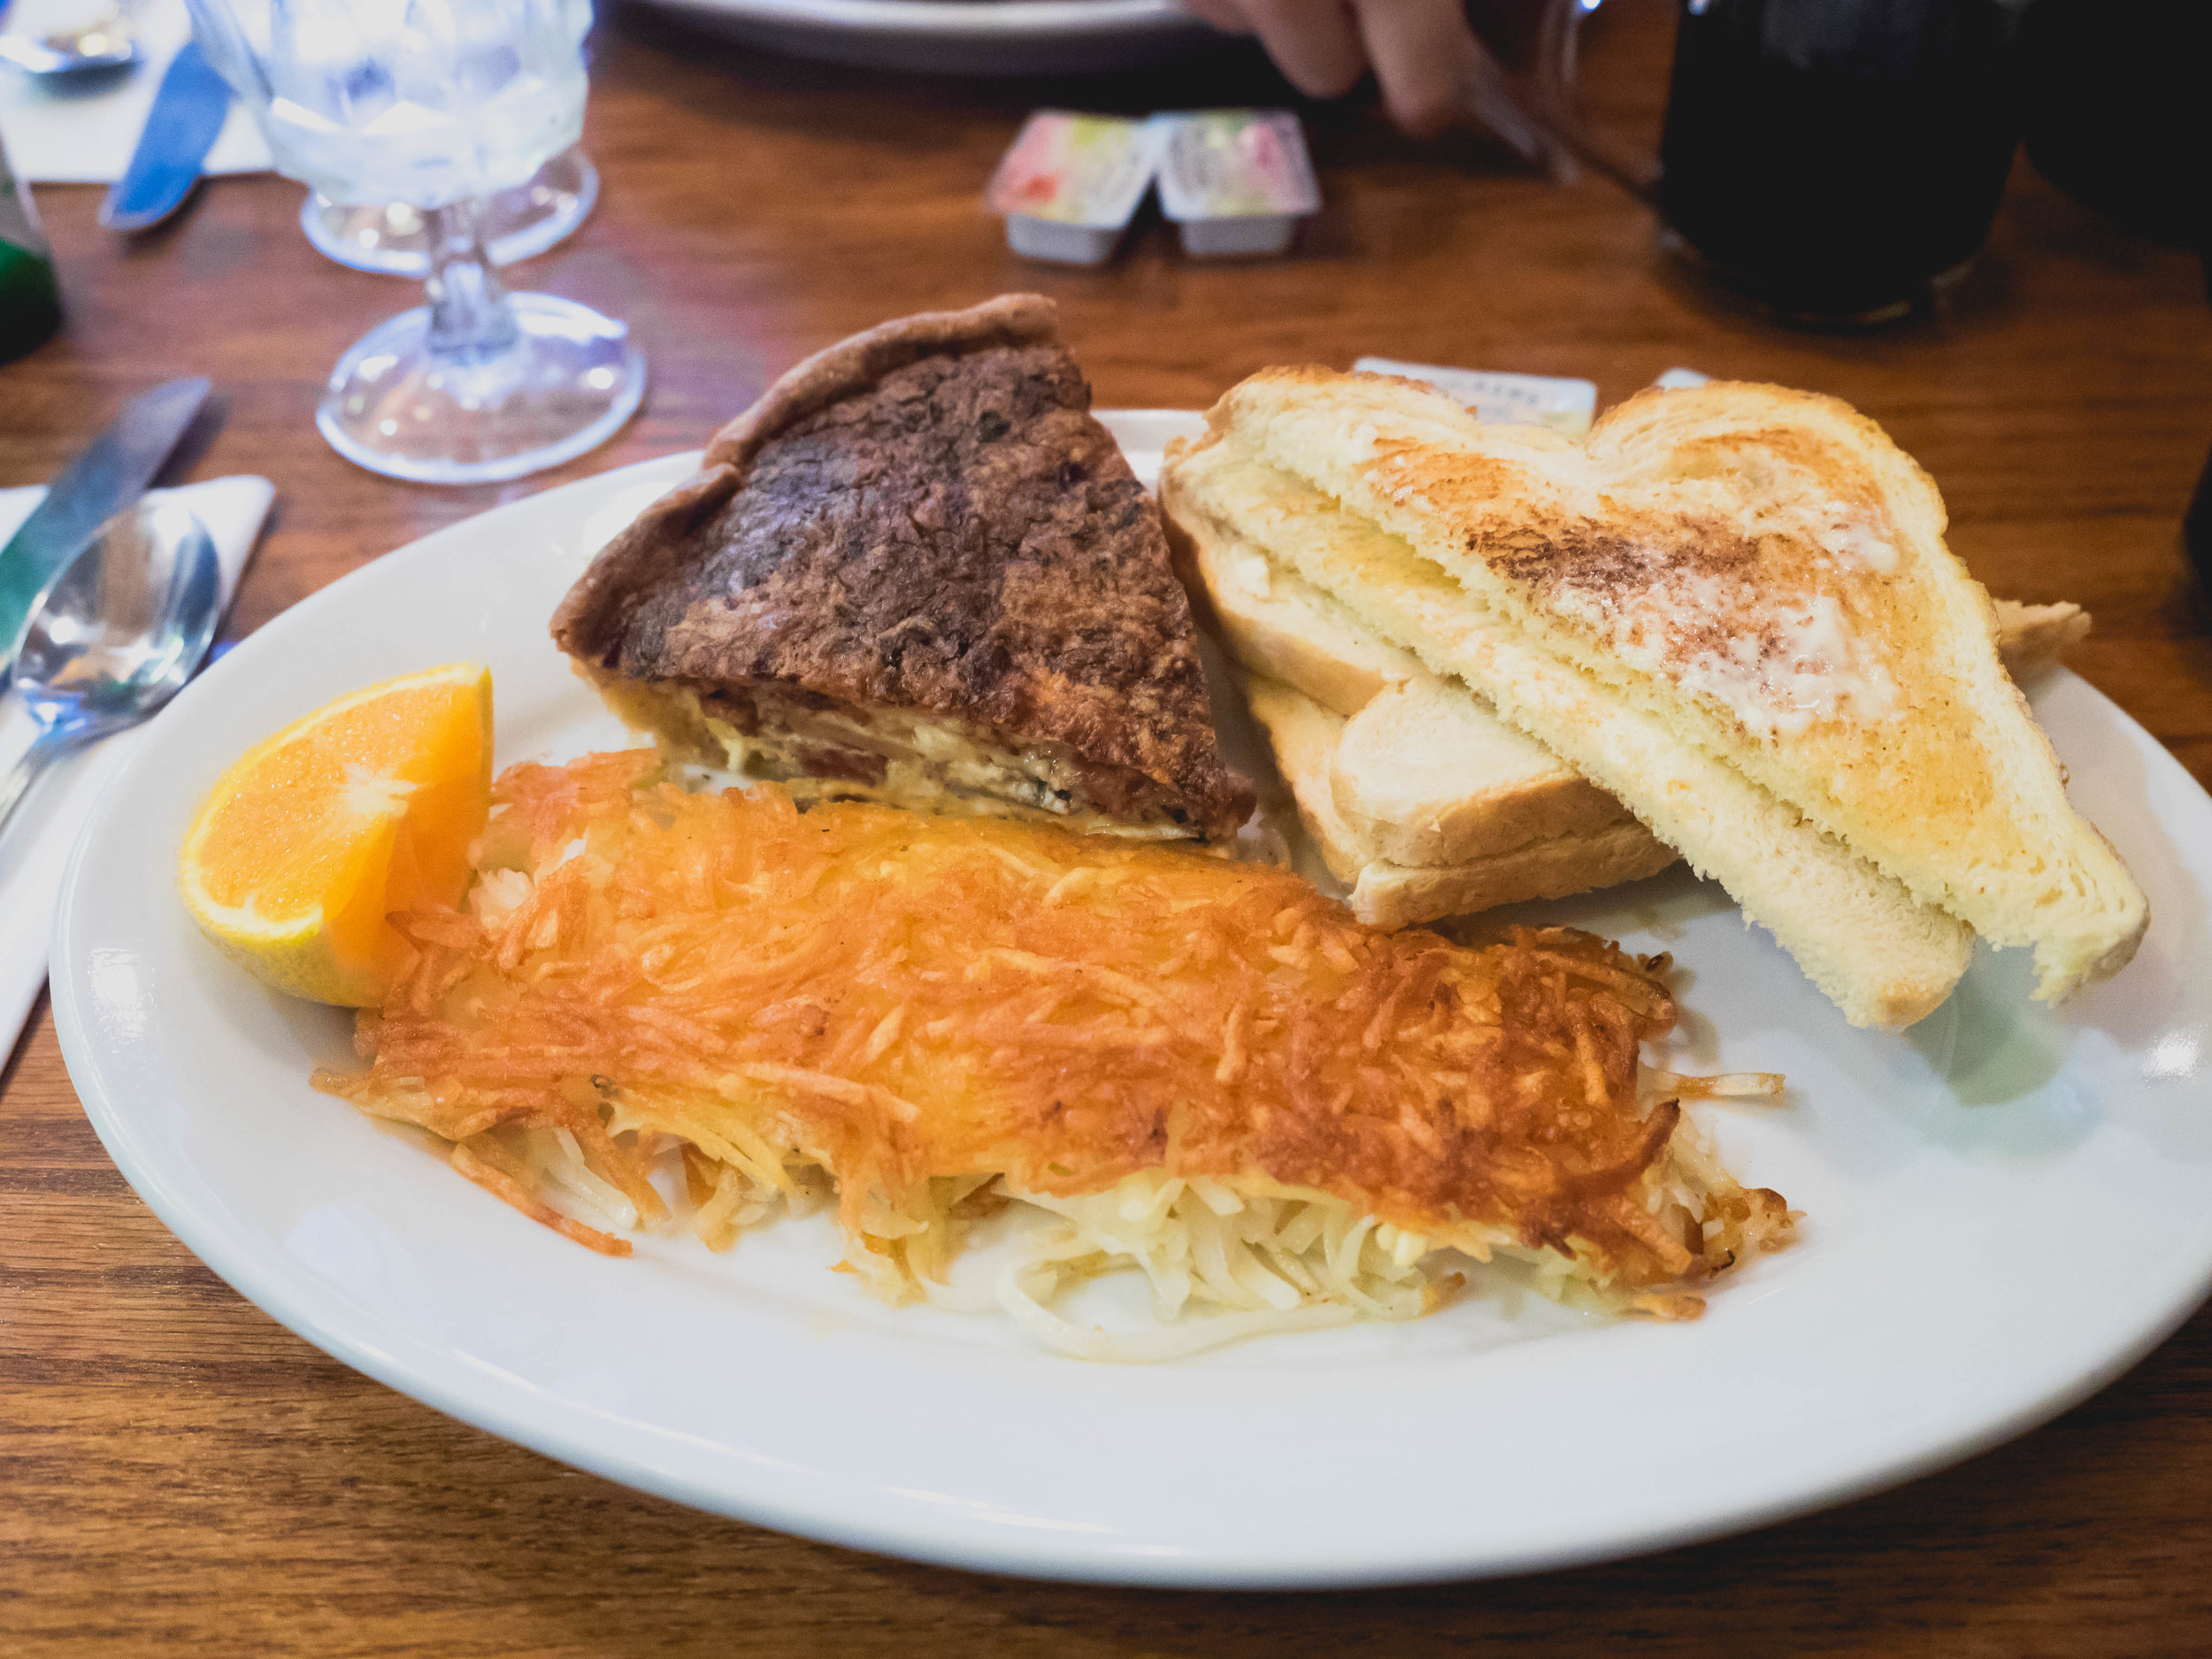 quiche  with hash browns and toast.